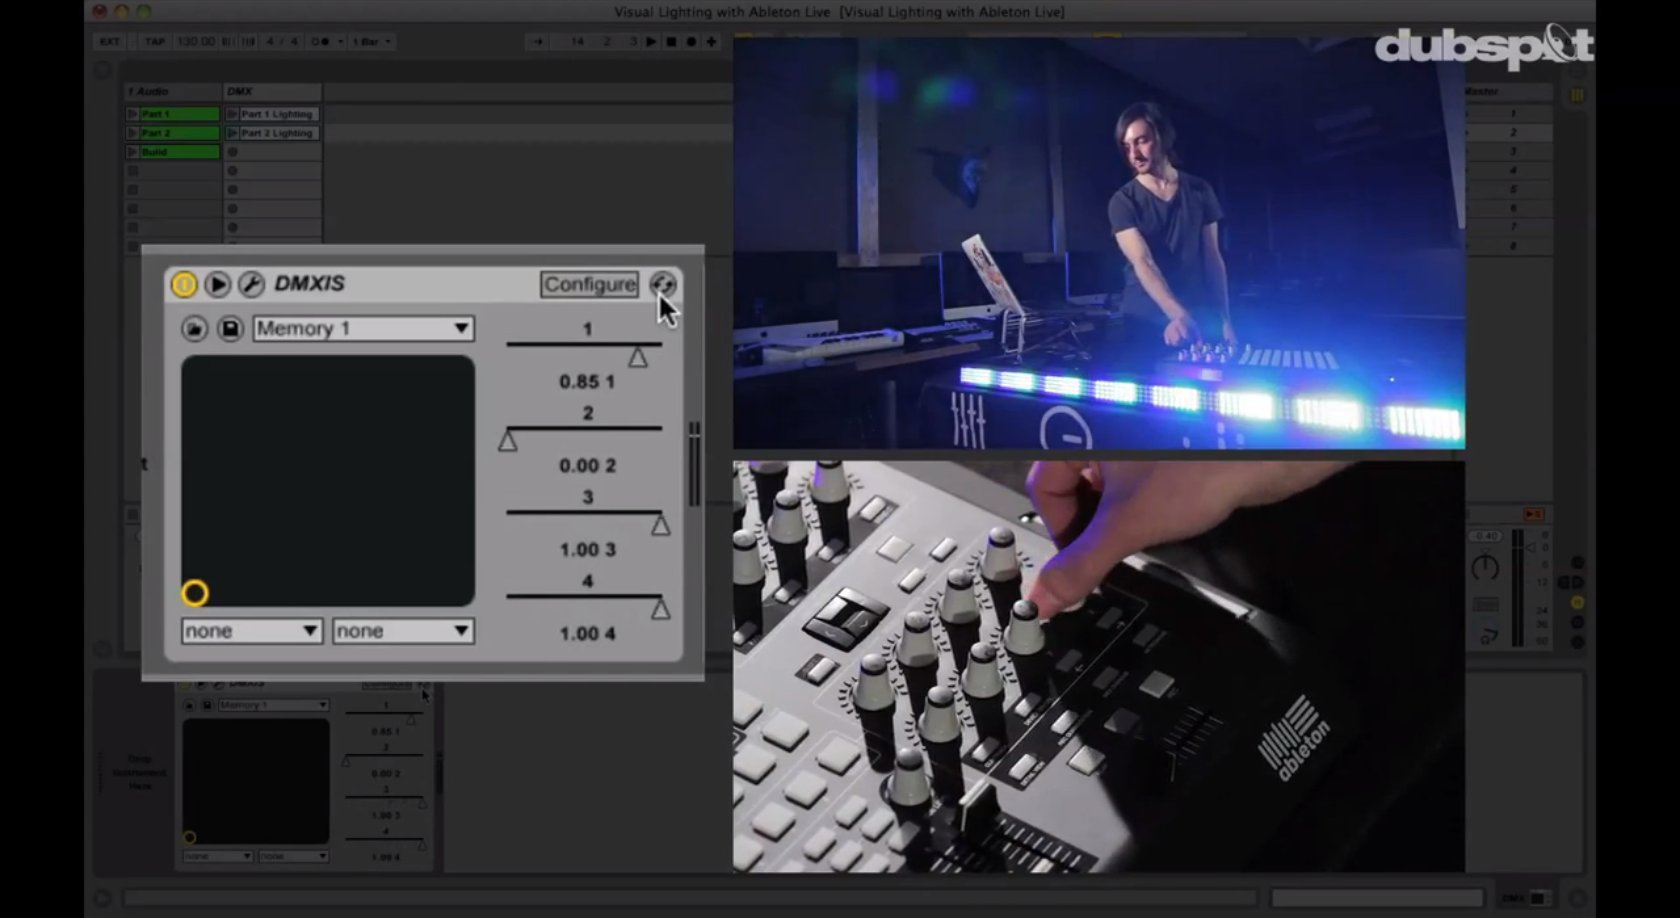 Drum Arpeggiator And Dmx Lighting Control Two New Tutorials From Dubspot